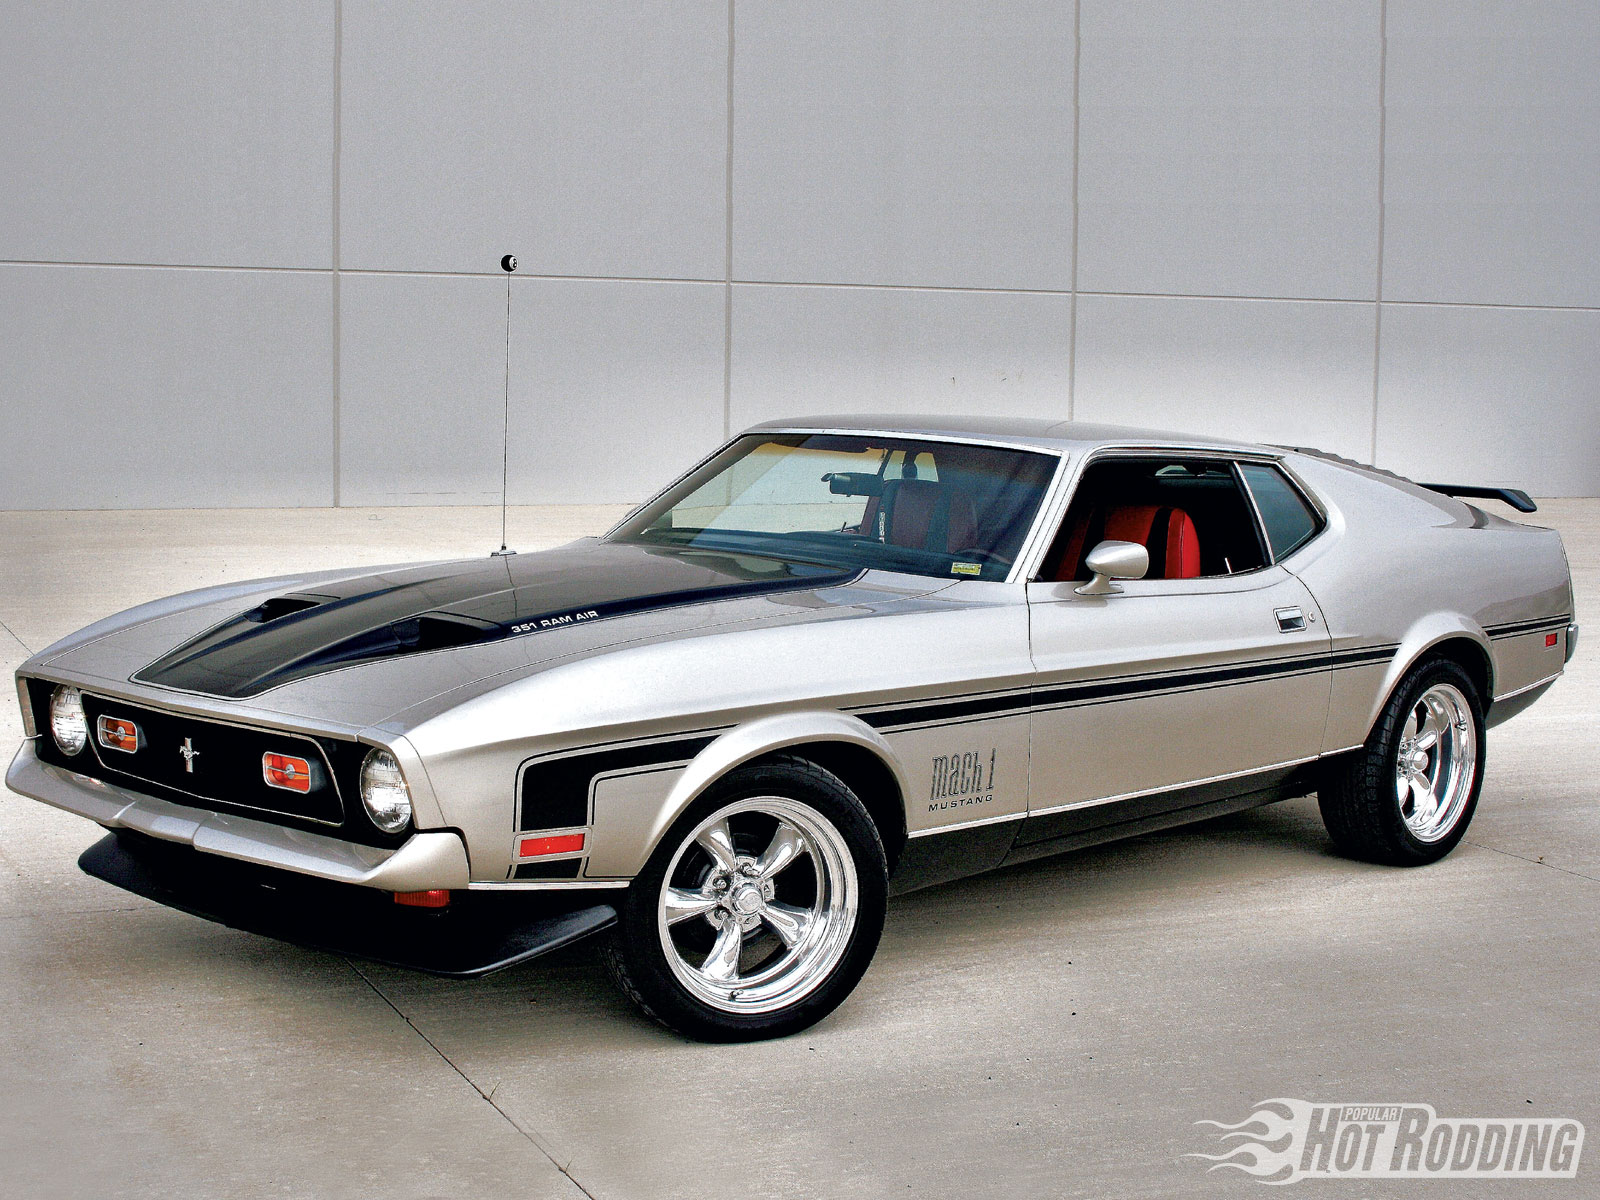 1972 Ford Mustang Mach 1 photo - 2